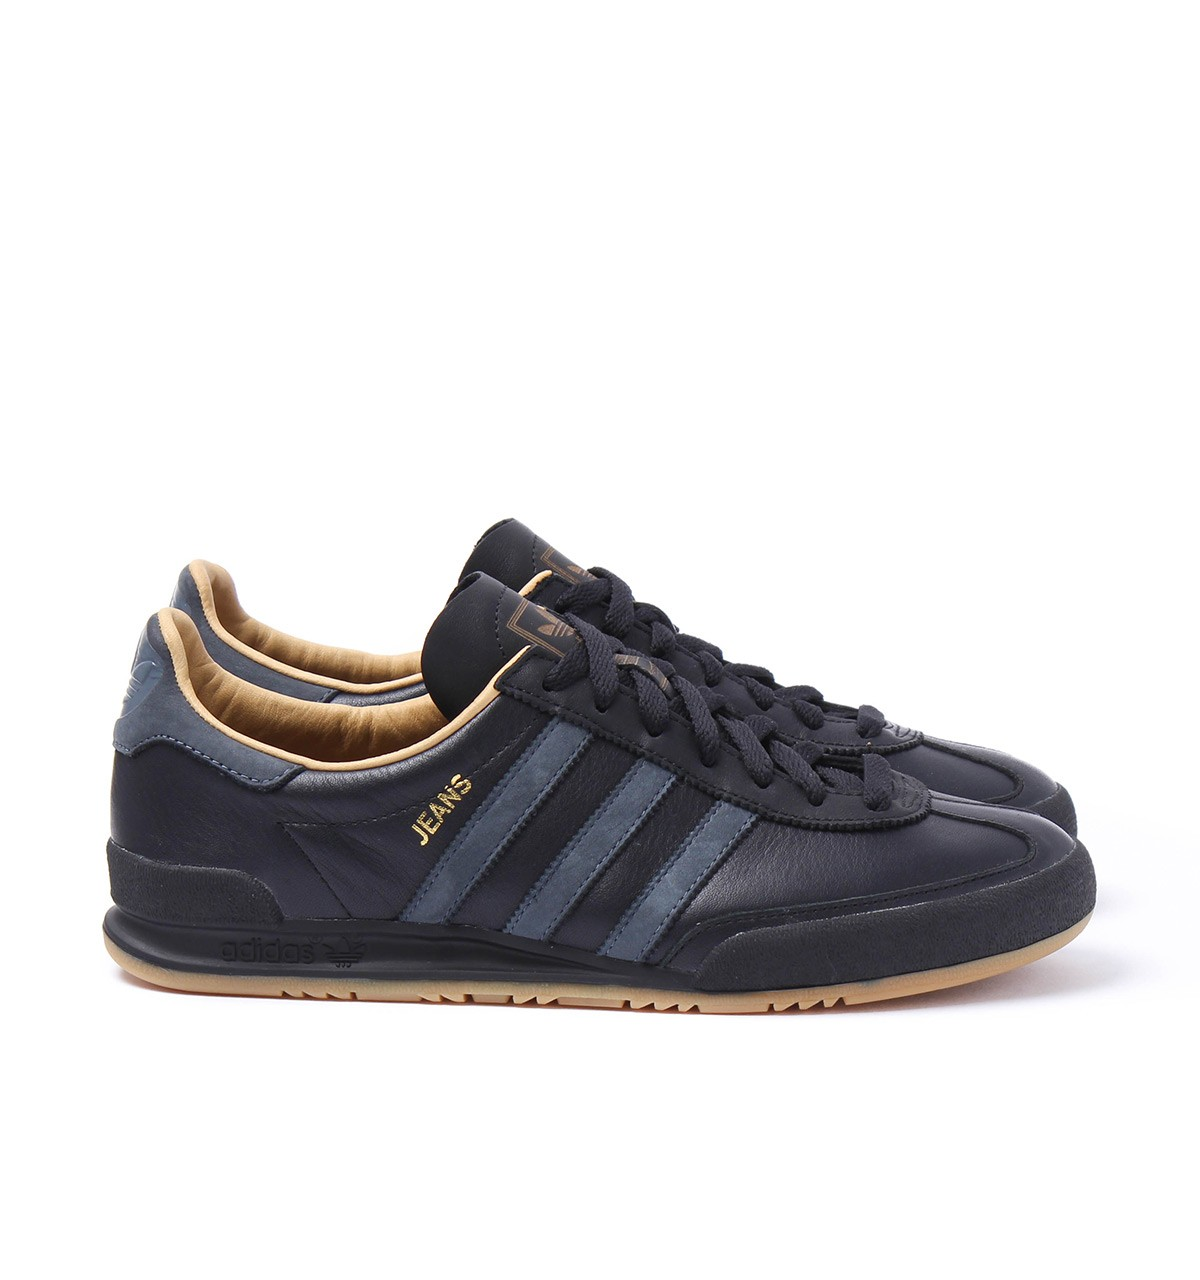 adidas jeans trainers